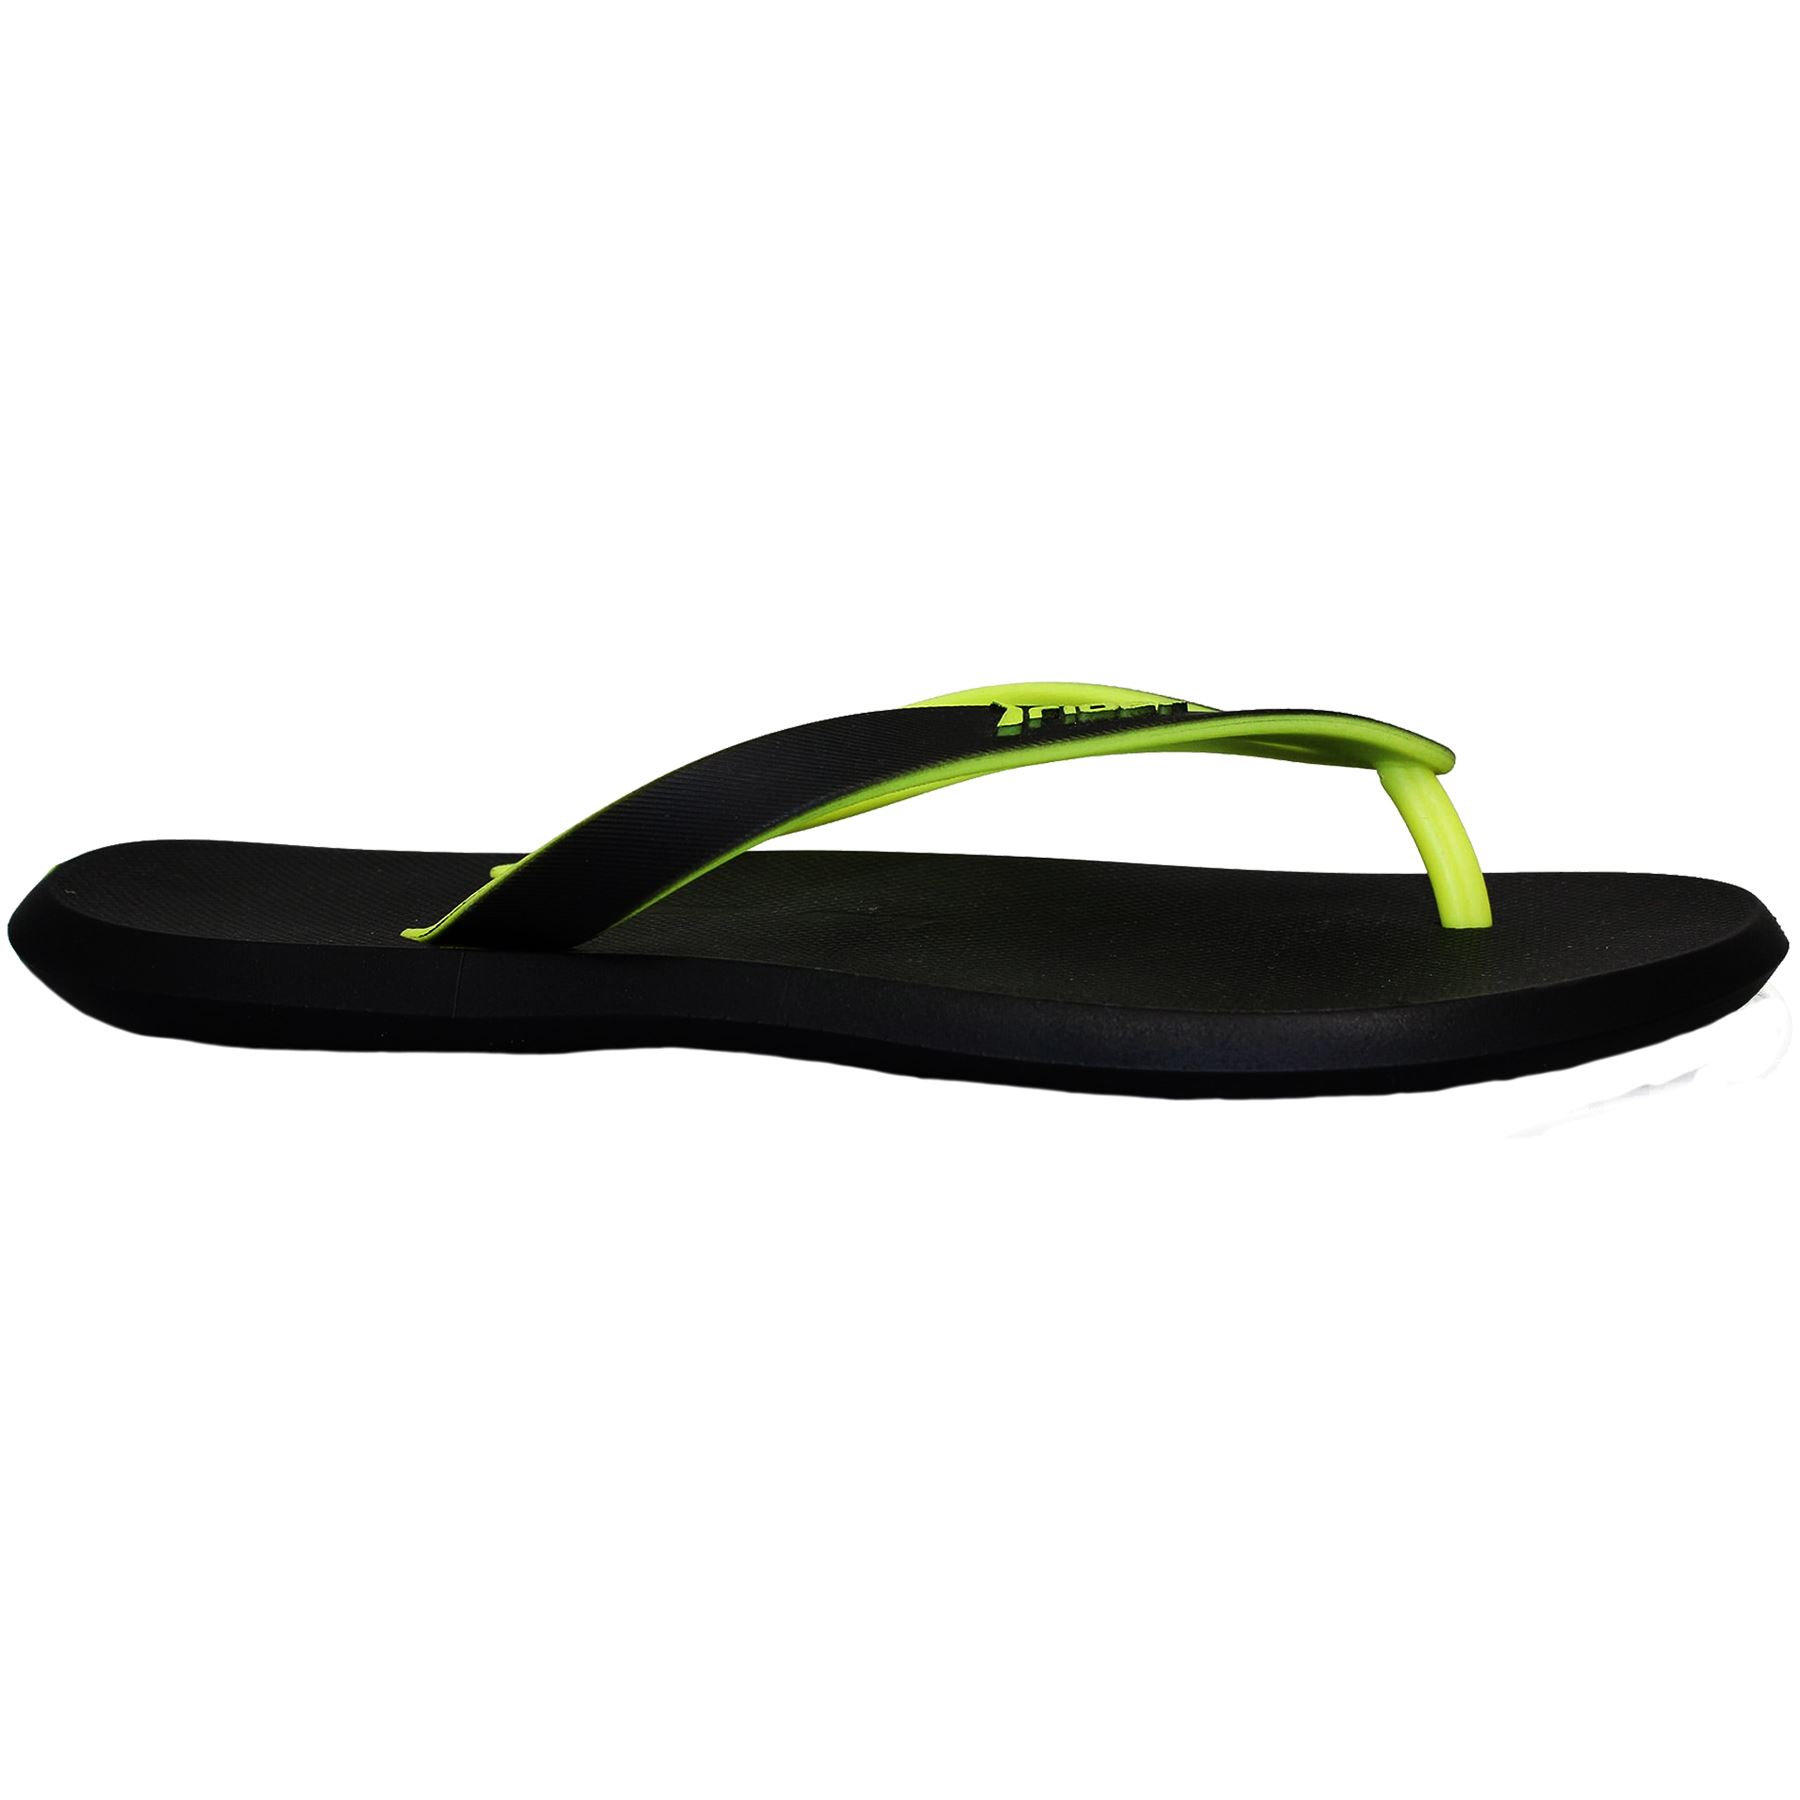 c97363d8396d75 Mens Basic Dual Sized Comfortable Beach Shoes Thong Sandals Flip Flops  Black Aus 8. About this product. Picture 1 of 5  Picture 2 of 5  Picture 3  of 5 ...